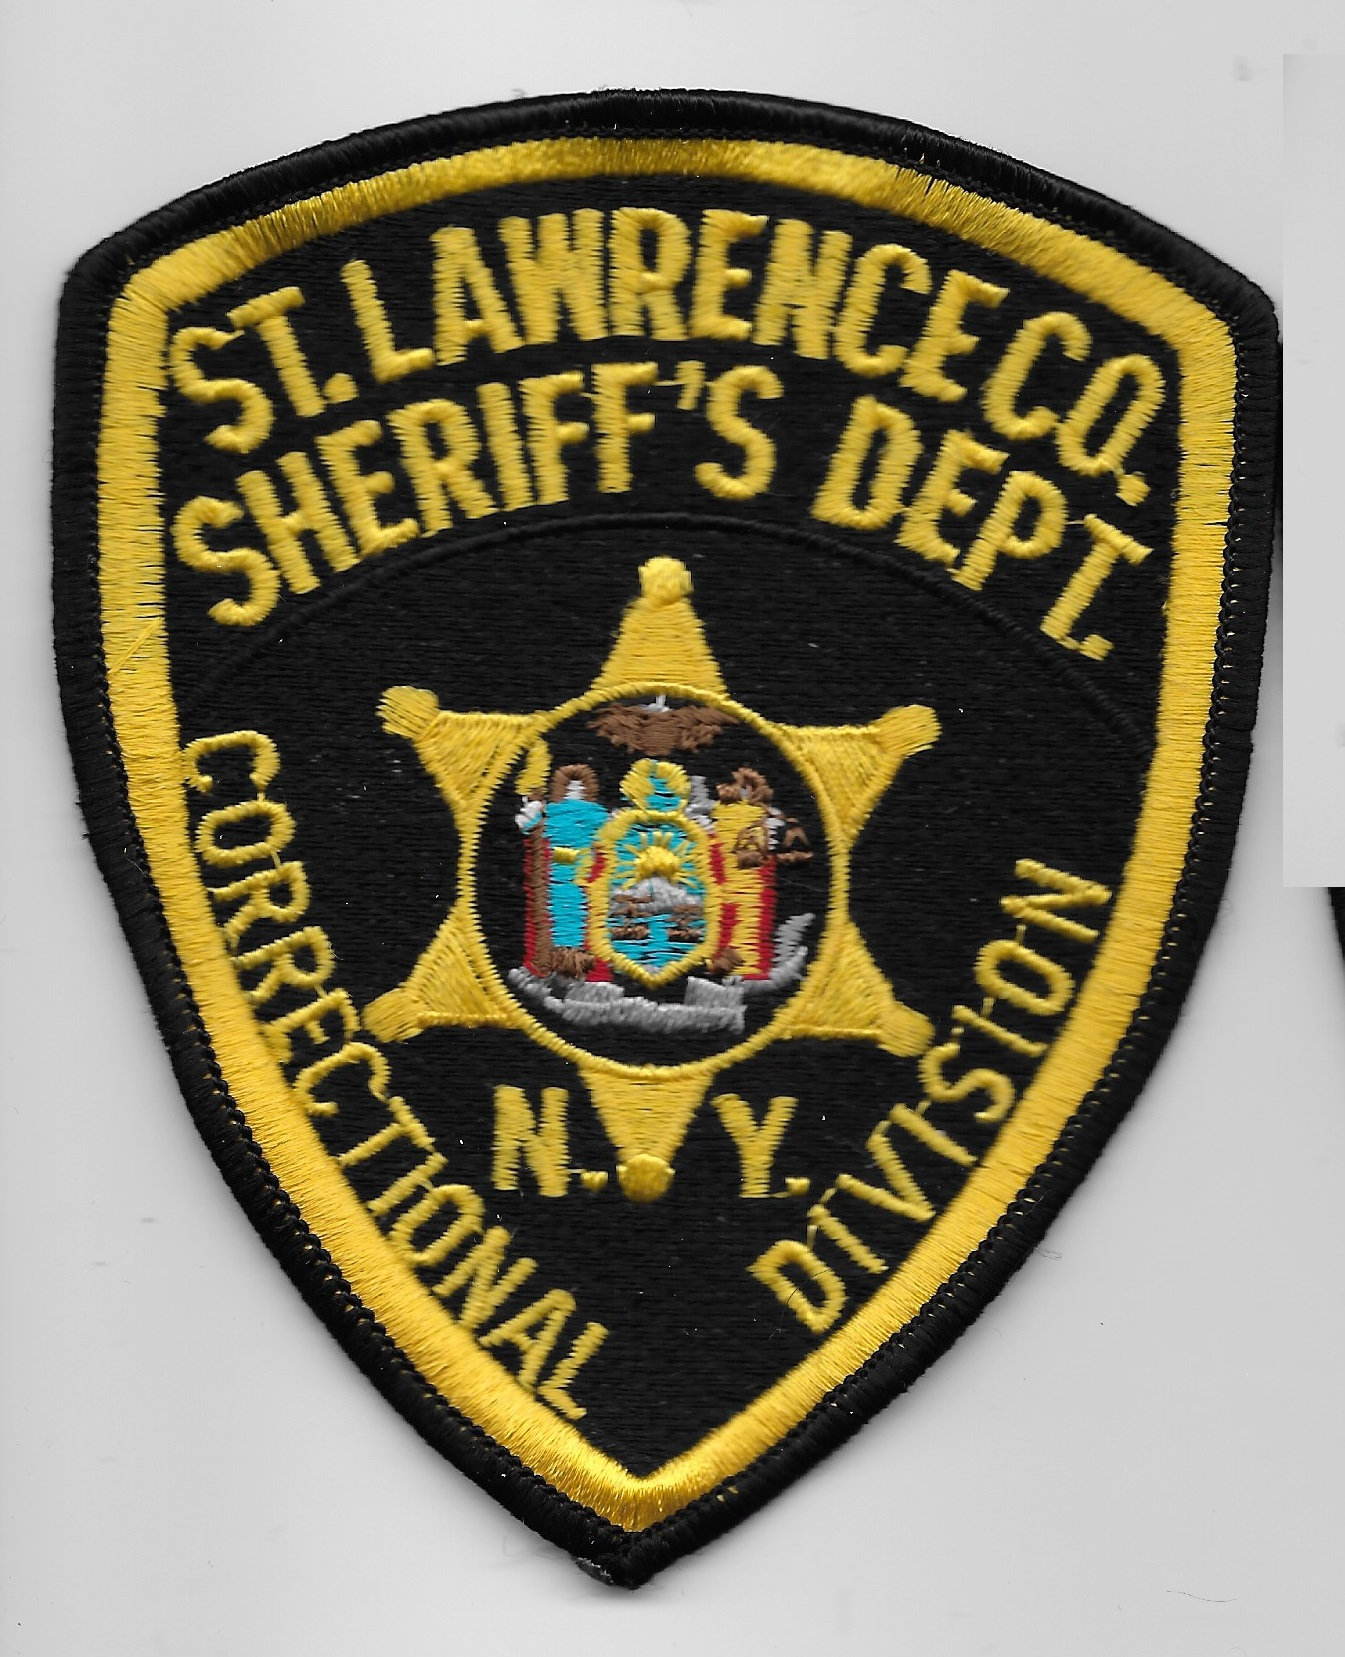 St. Lawrence County Sheriff Correctional Division NY